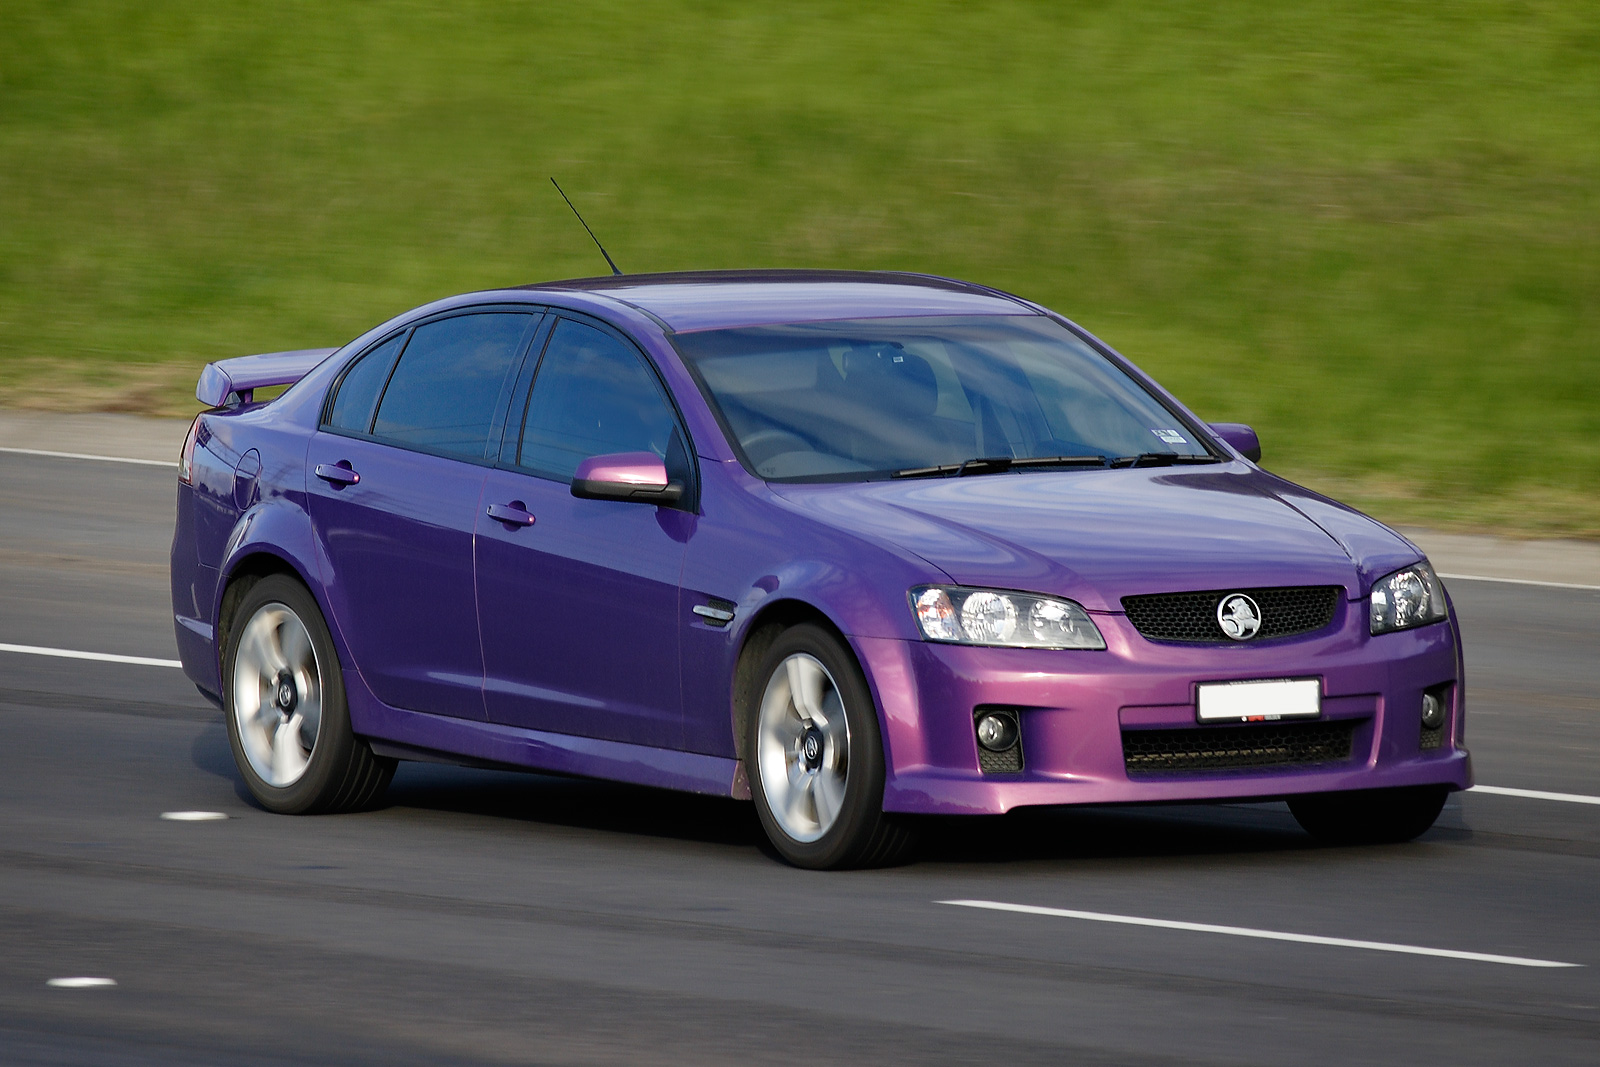 File20072008 holden ve commodore sv6 sedang wikimedia commons file20072008 holden ve commodore sv6 sedang vanachro Choice Image